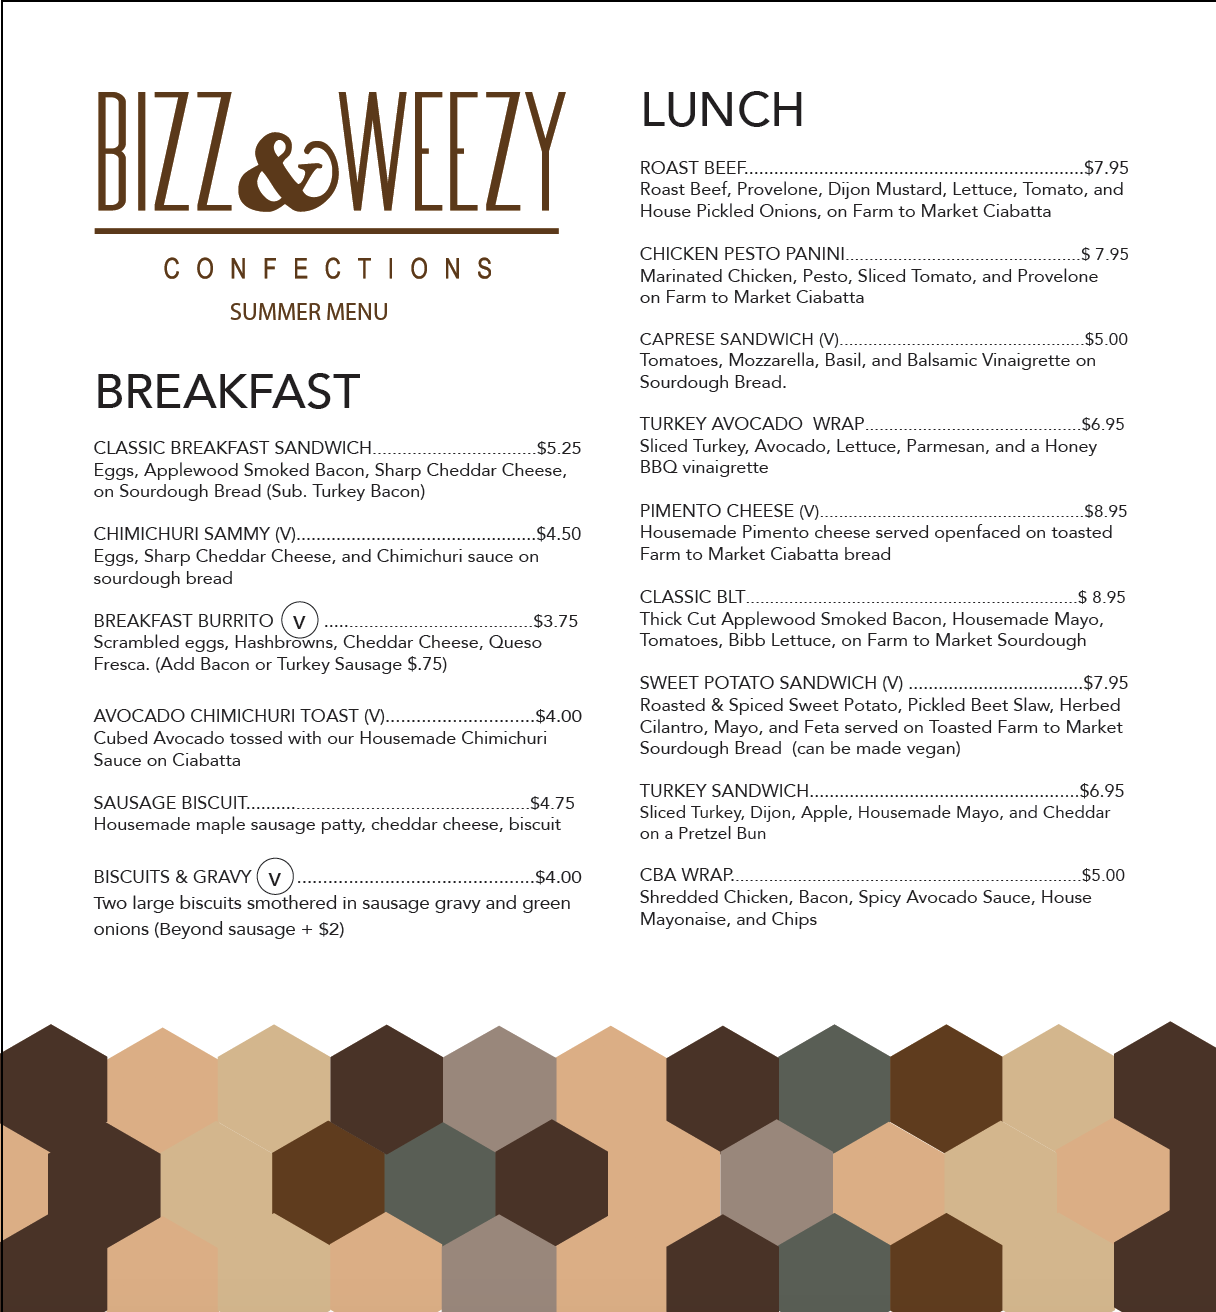 Bizz & Weezy Menu - Here is a sample of the menu that would be switched seasonally.